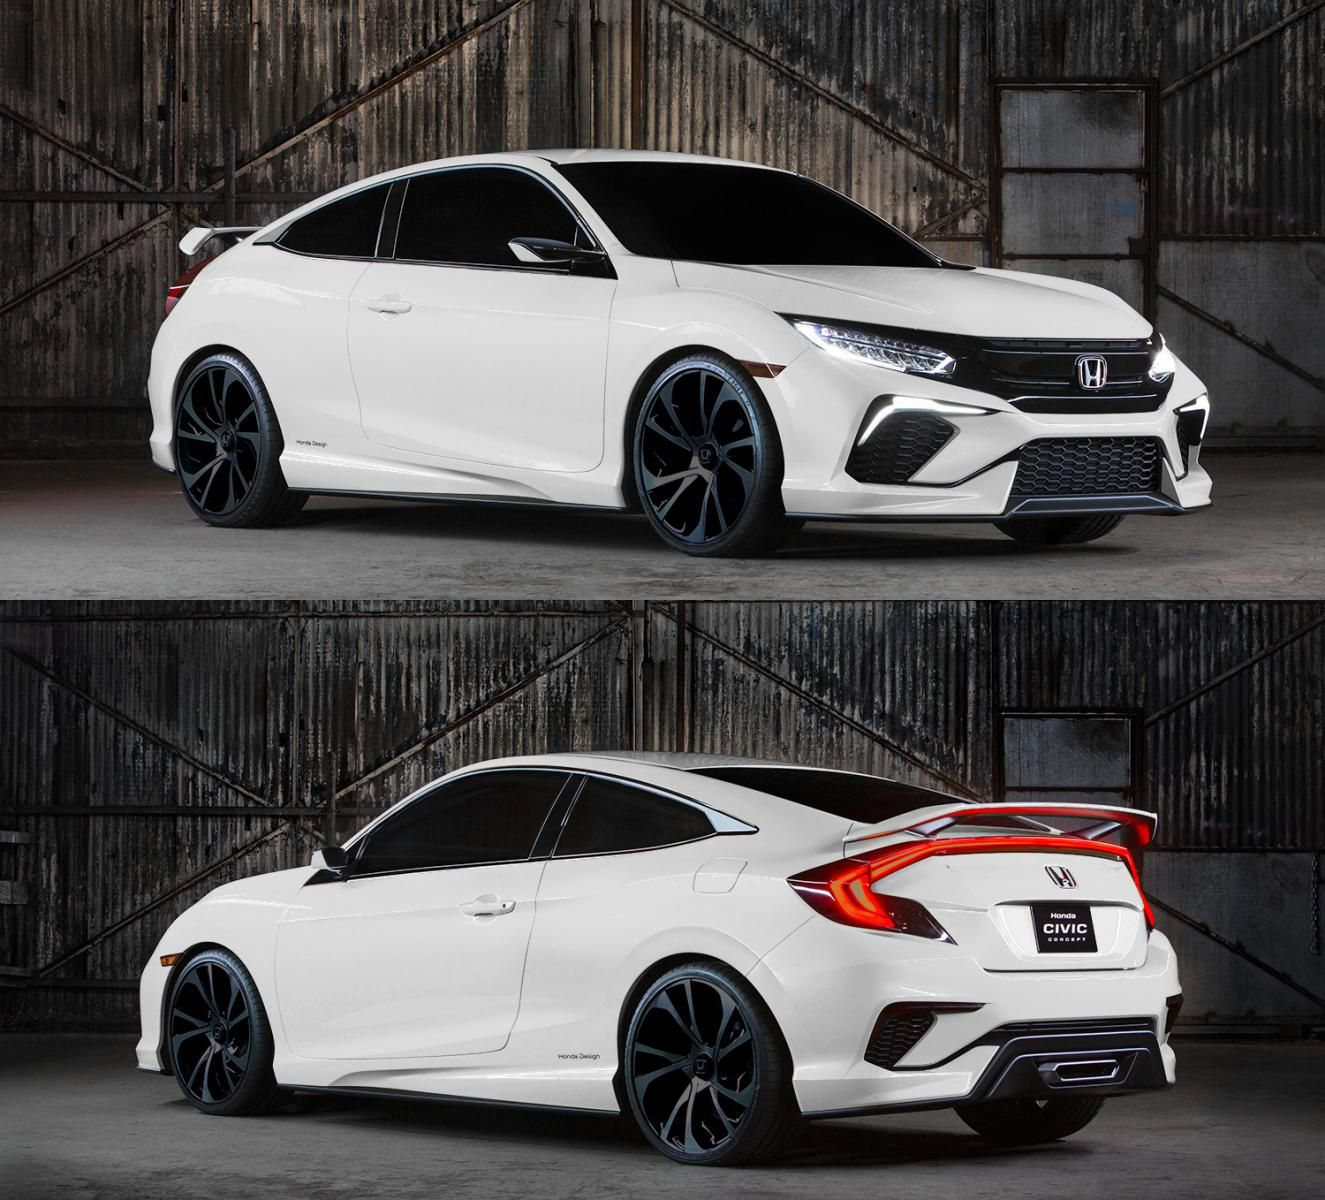 Best 25 honda civic price ideas on pinterest honda civic wheels honda civic car and honda civic coupe